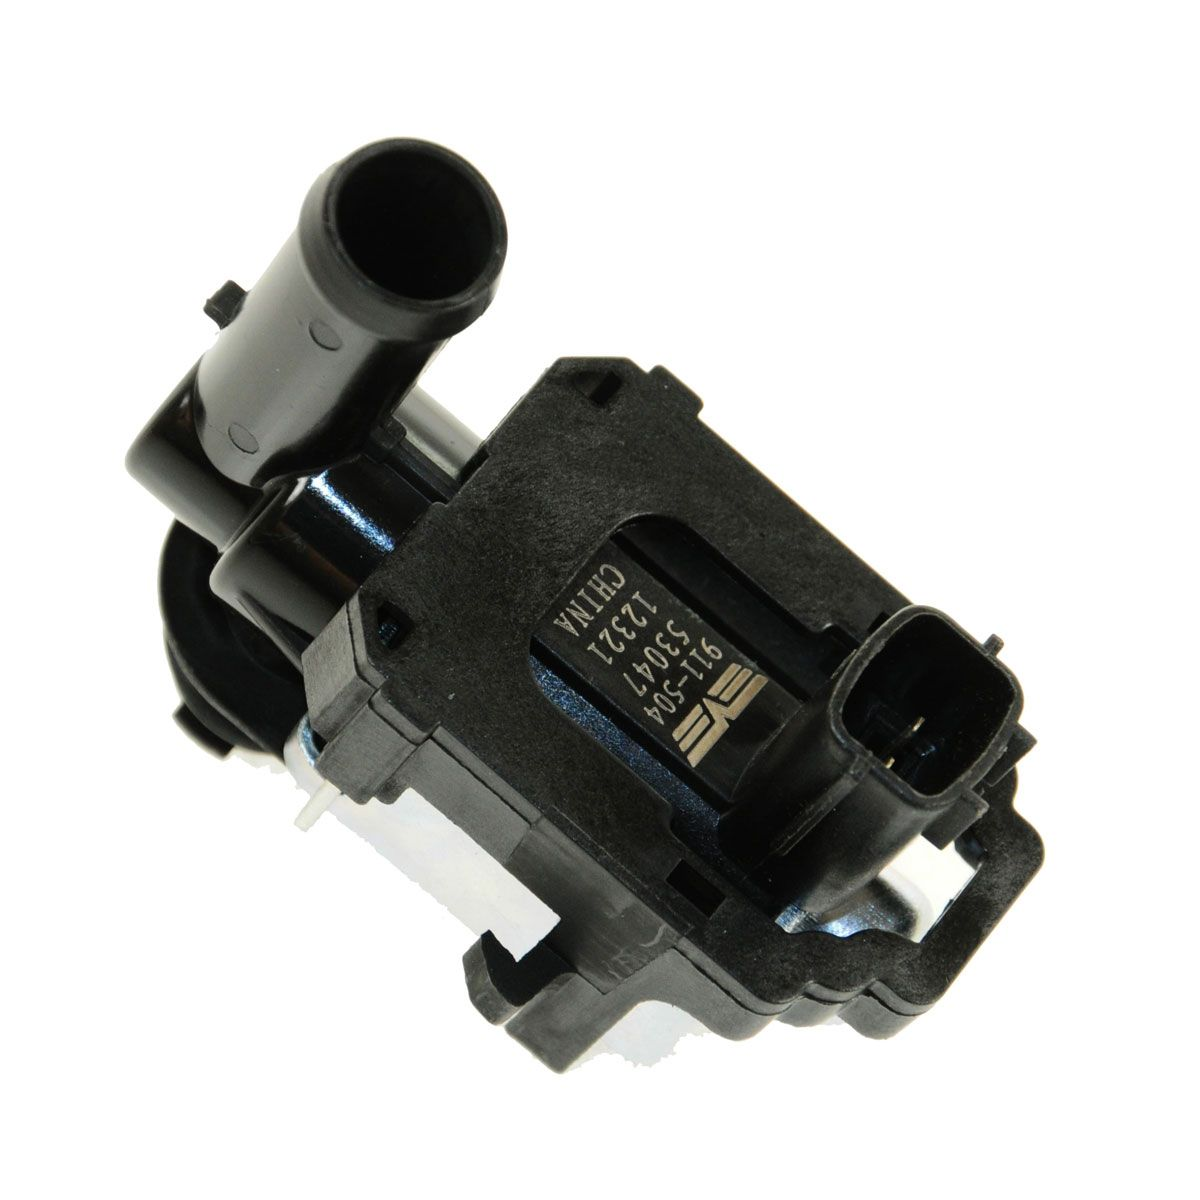 Canister Purge Valve Solenoid >> Vapor Canister Purge Vent Solenoid Valve for G37 Altima